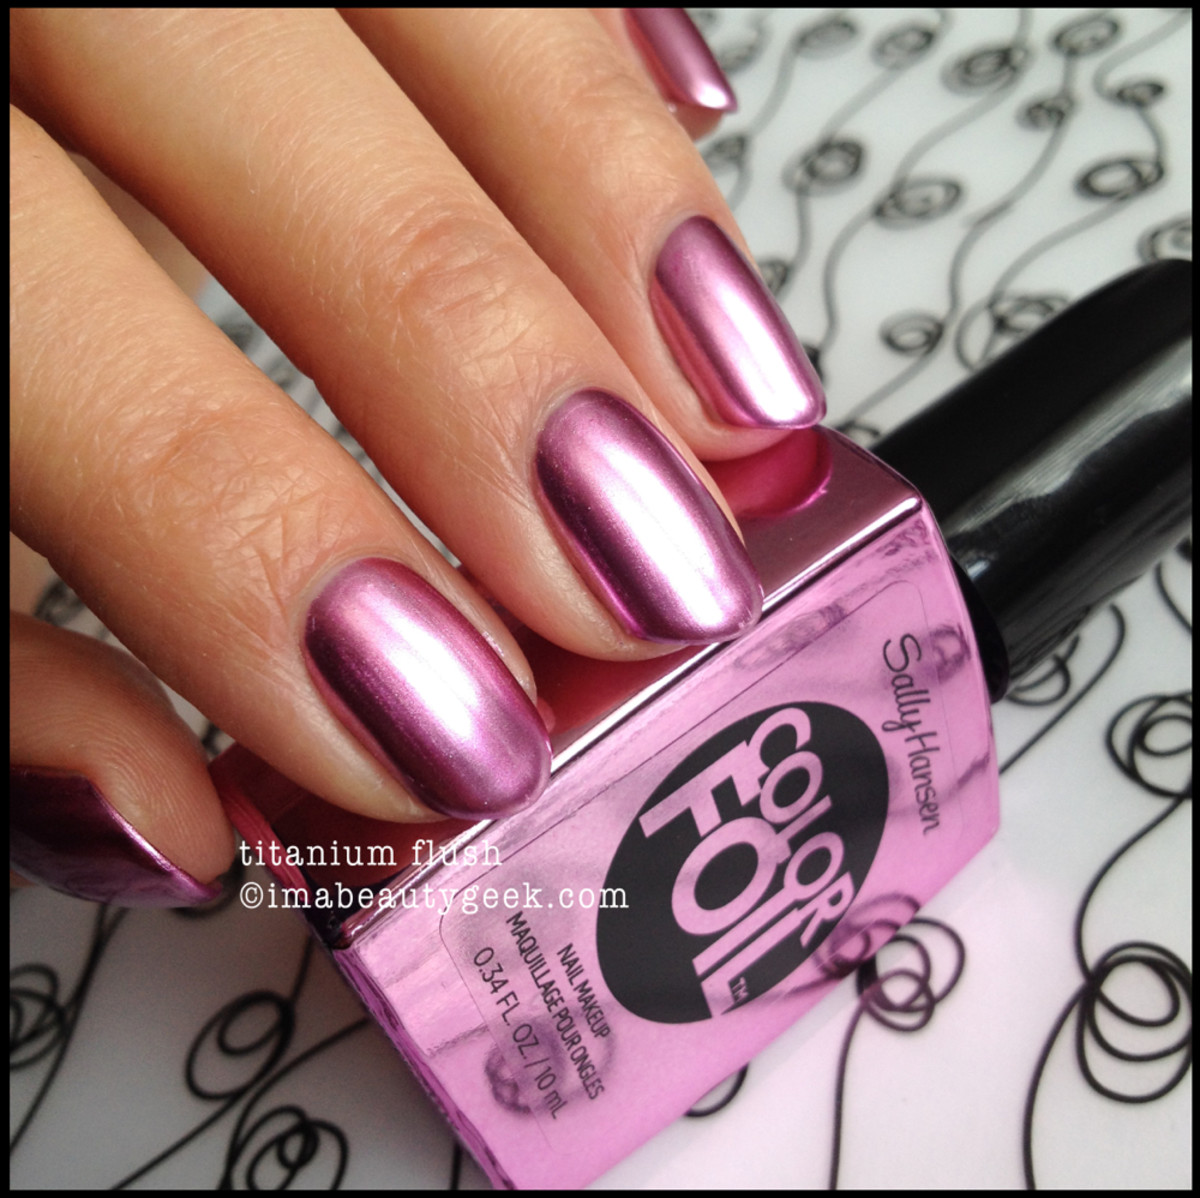 Sally Hansen Color Foil Titanium Flush